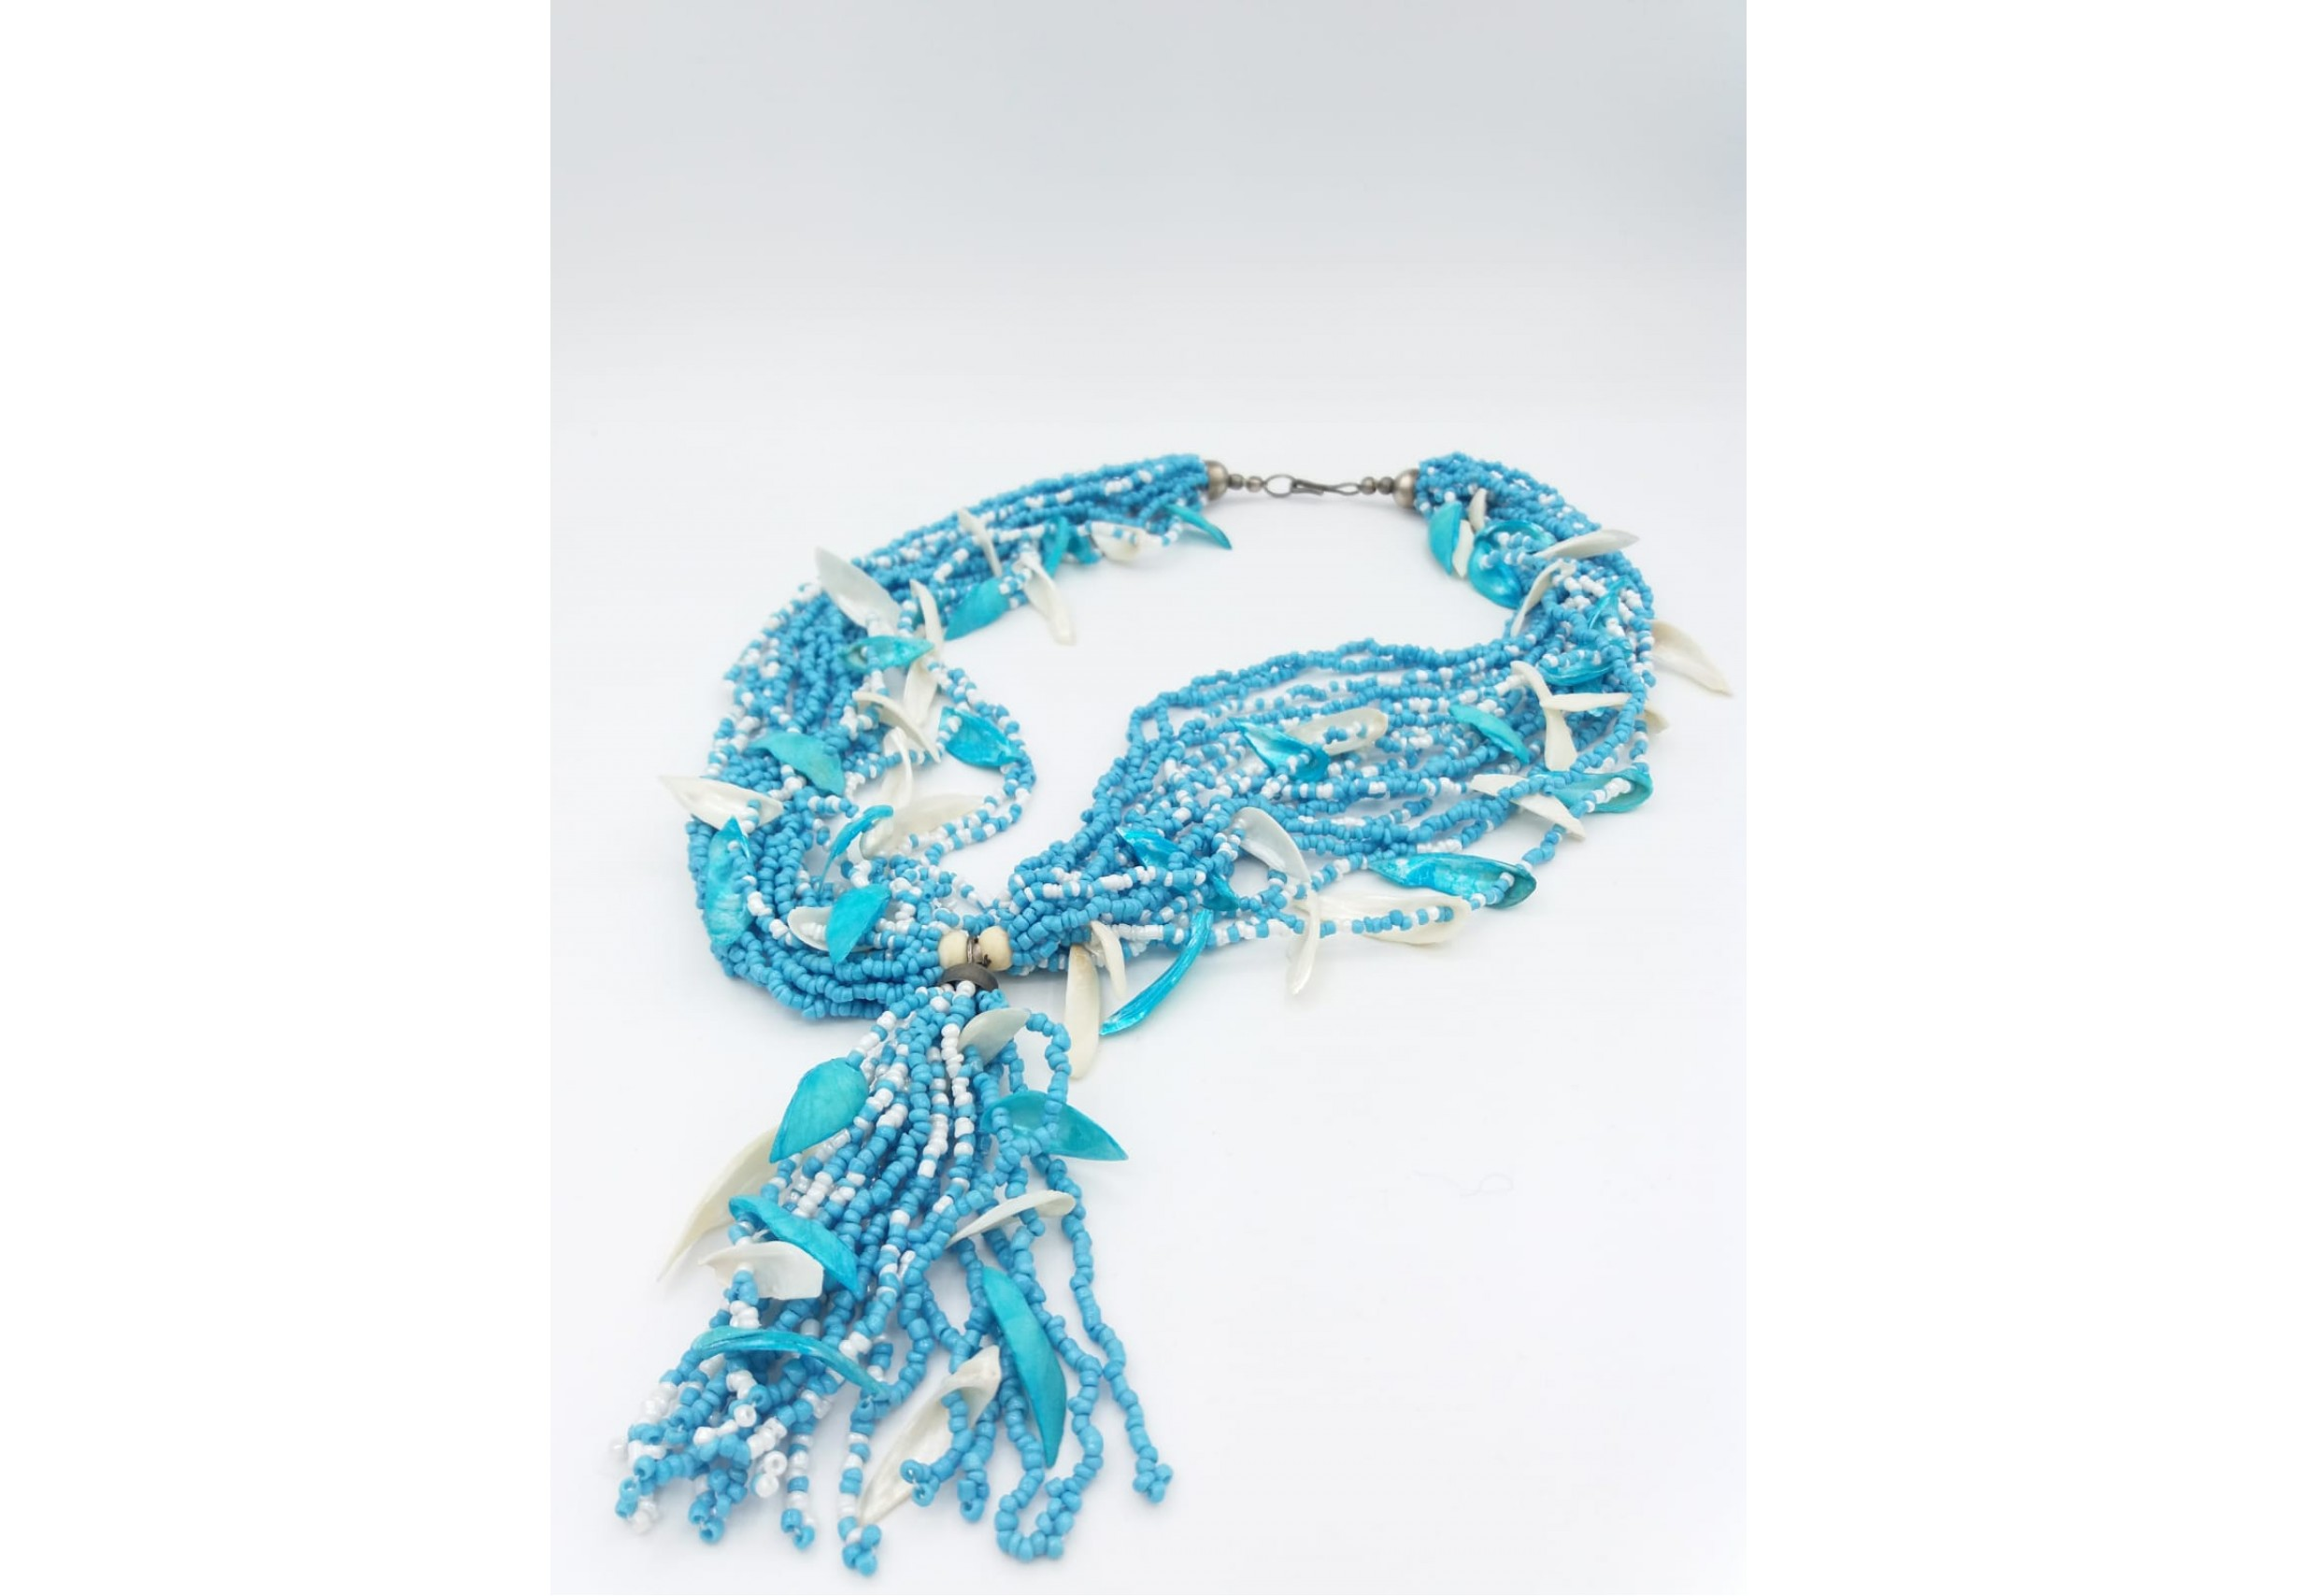 Bead necklace in blue and white